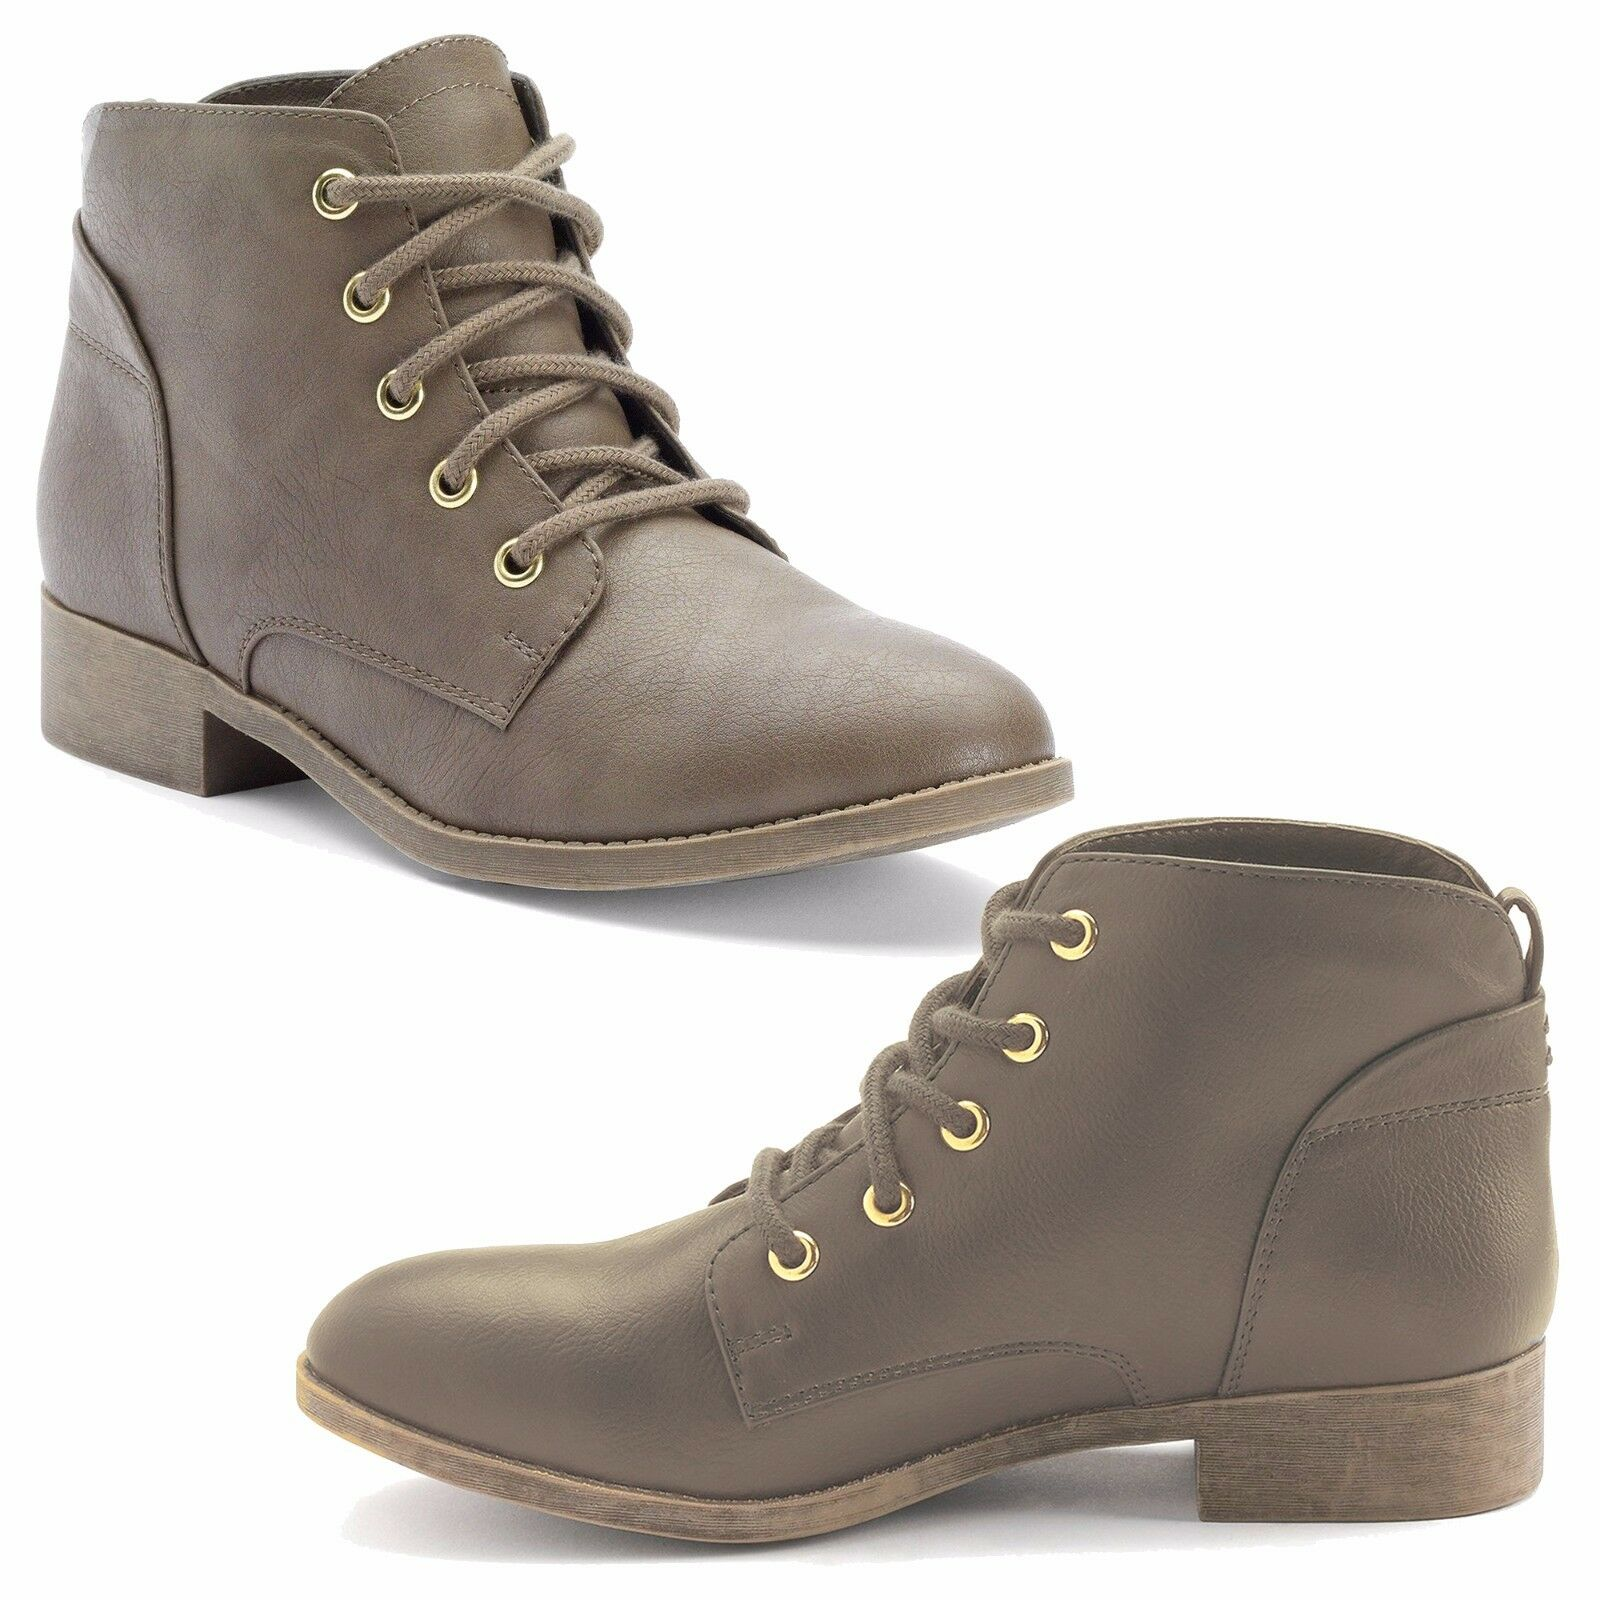 New Candie's Women's Lace-Up Ankle Boots Faux Leather Taupe Size 9 MSRP